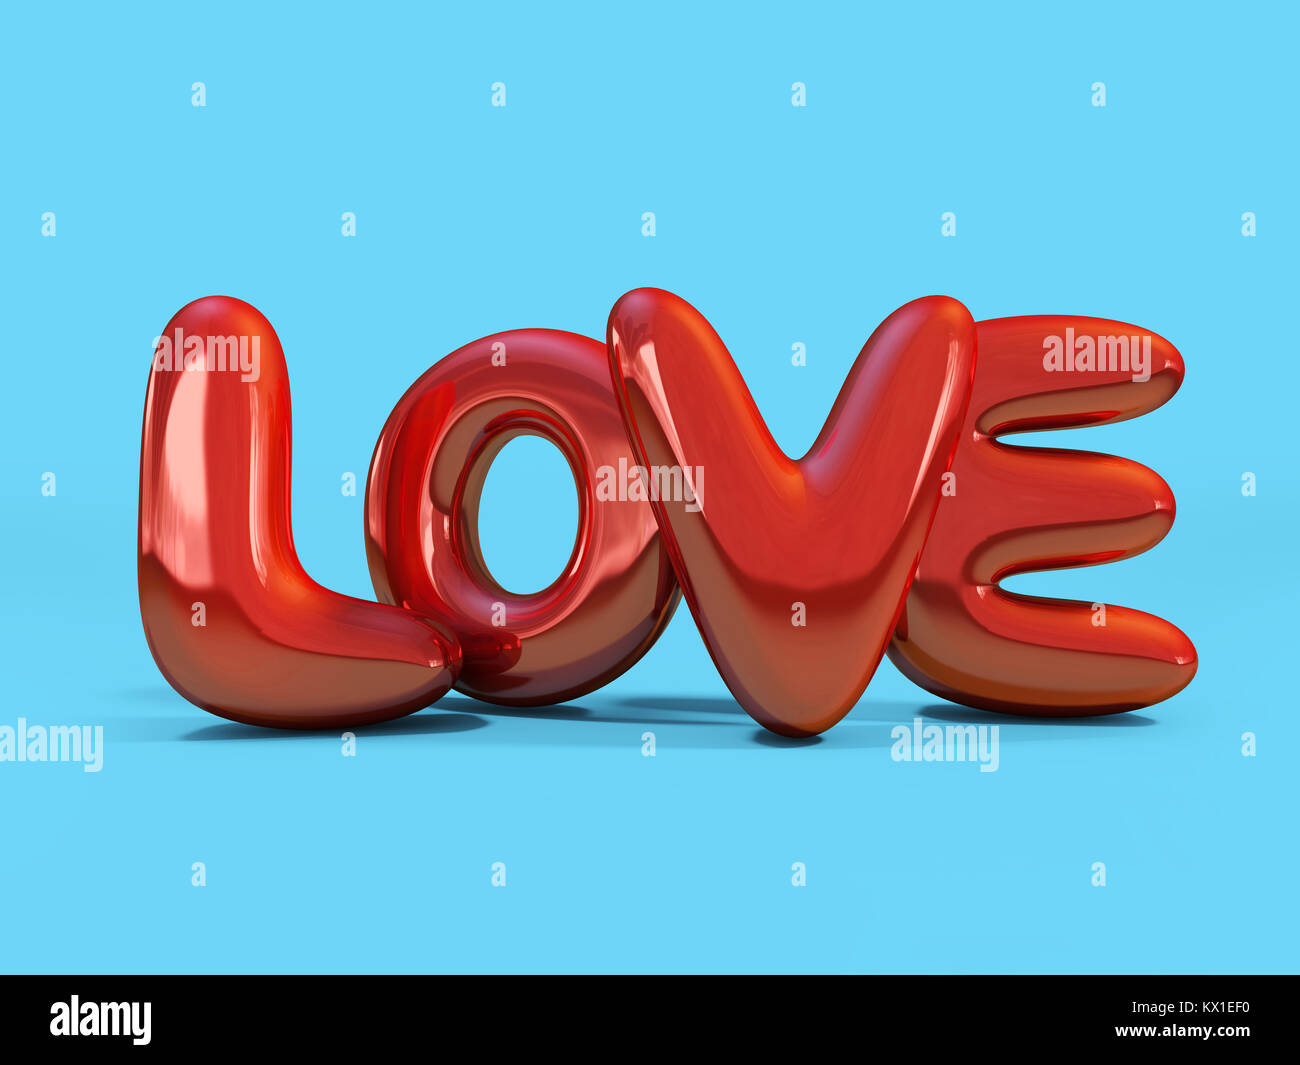 Letters love heart symbol 3d stock photos letters love heart red inflatable word love over background with reflection 3d rendering stock image biocorpaavc Gallery